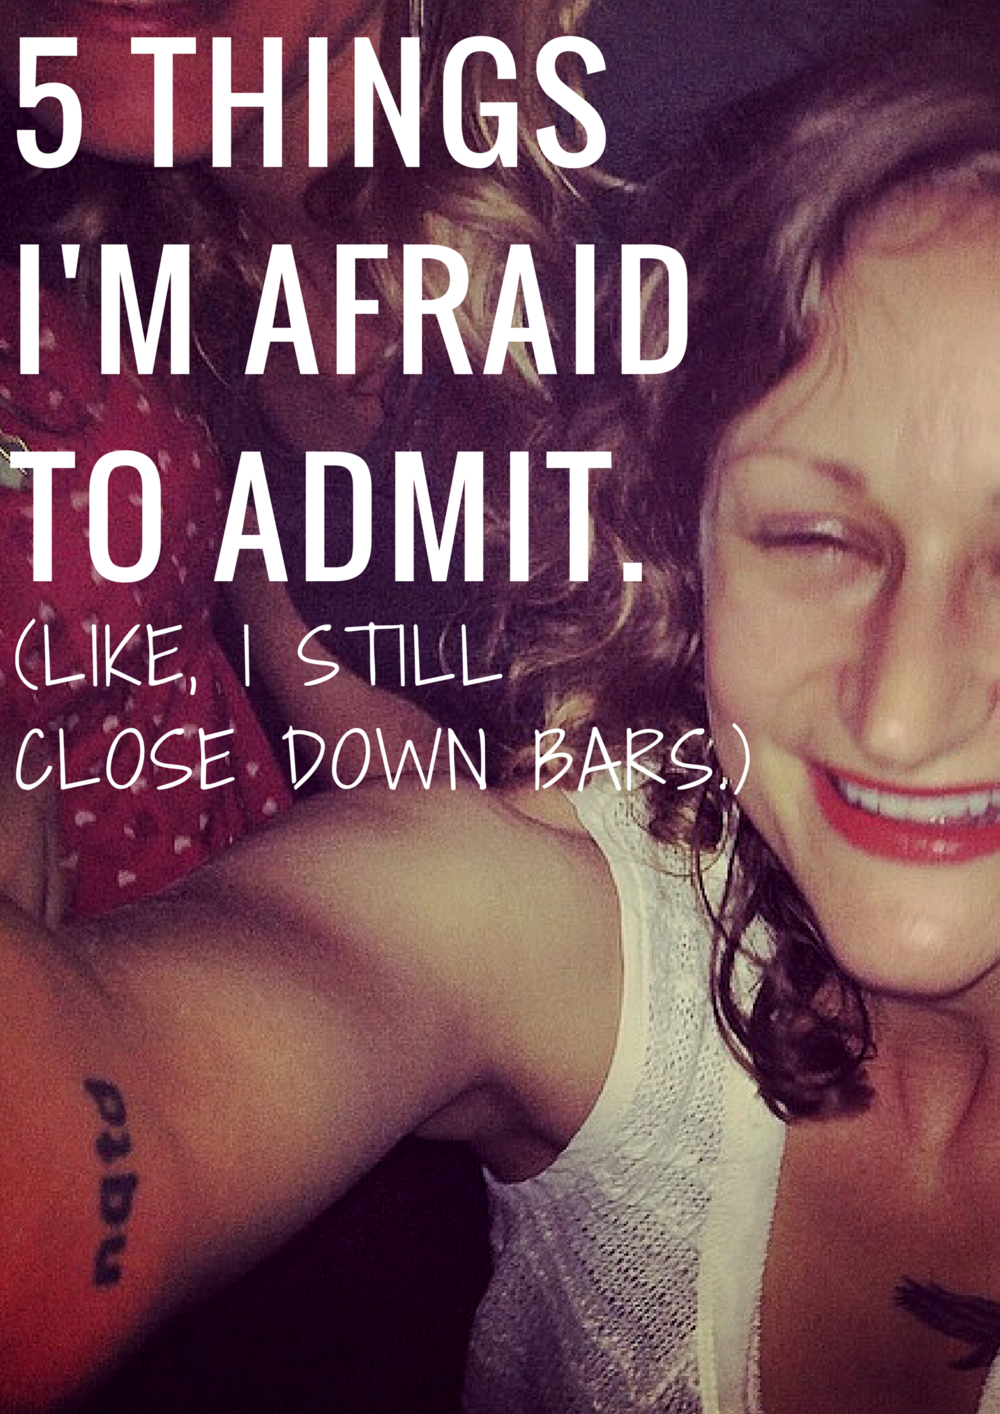 FIVE THINGS I'M AFRAID TO ADMIT I STILL CLOSE DOWN BARS I JUST DON'T DRINK